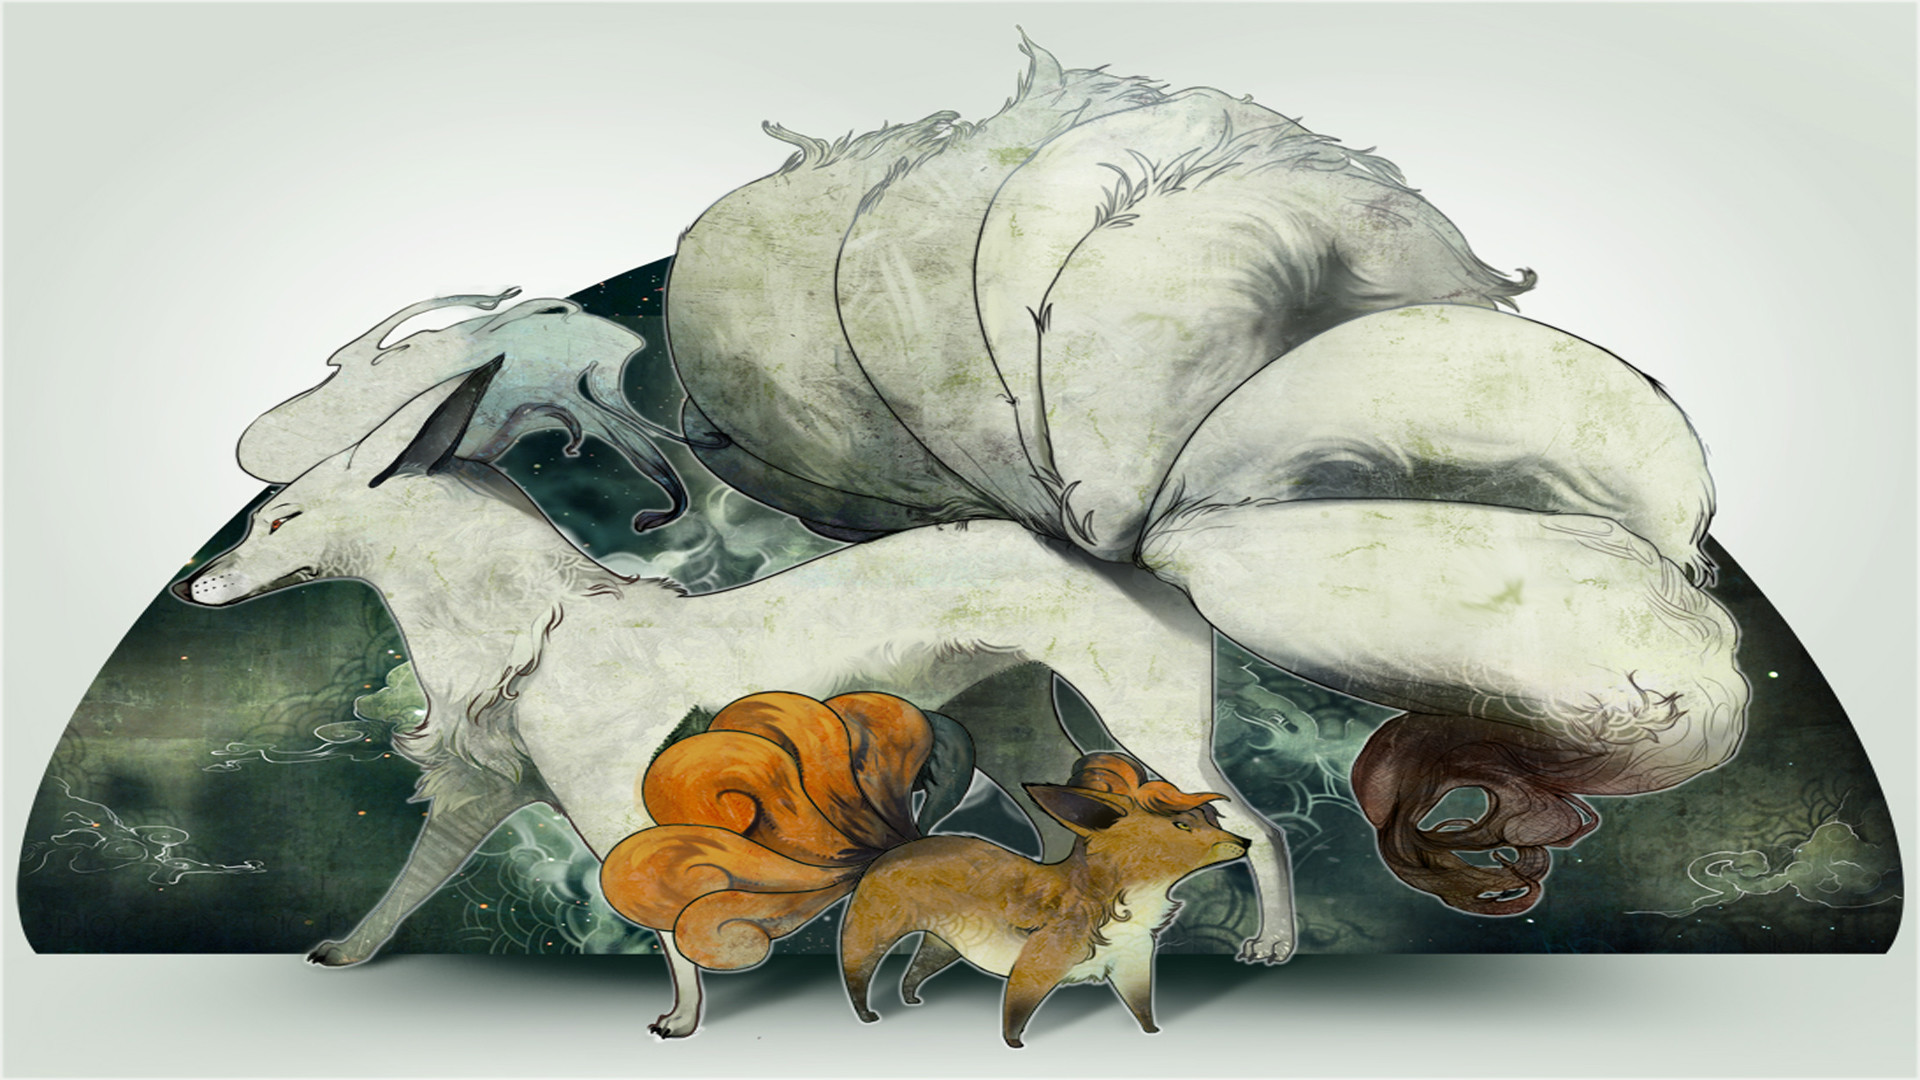 Pretty cool vulpix and ninetails wallpaper.